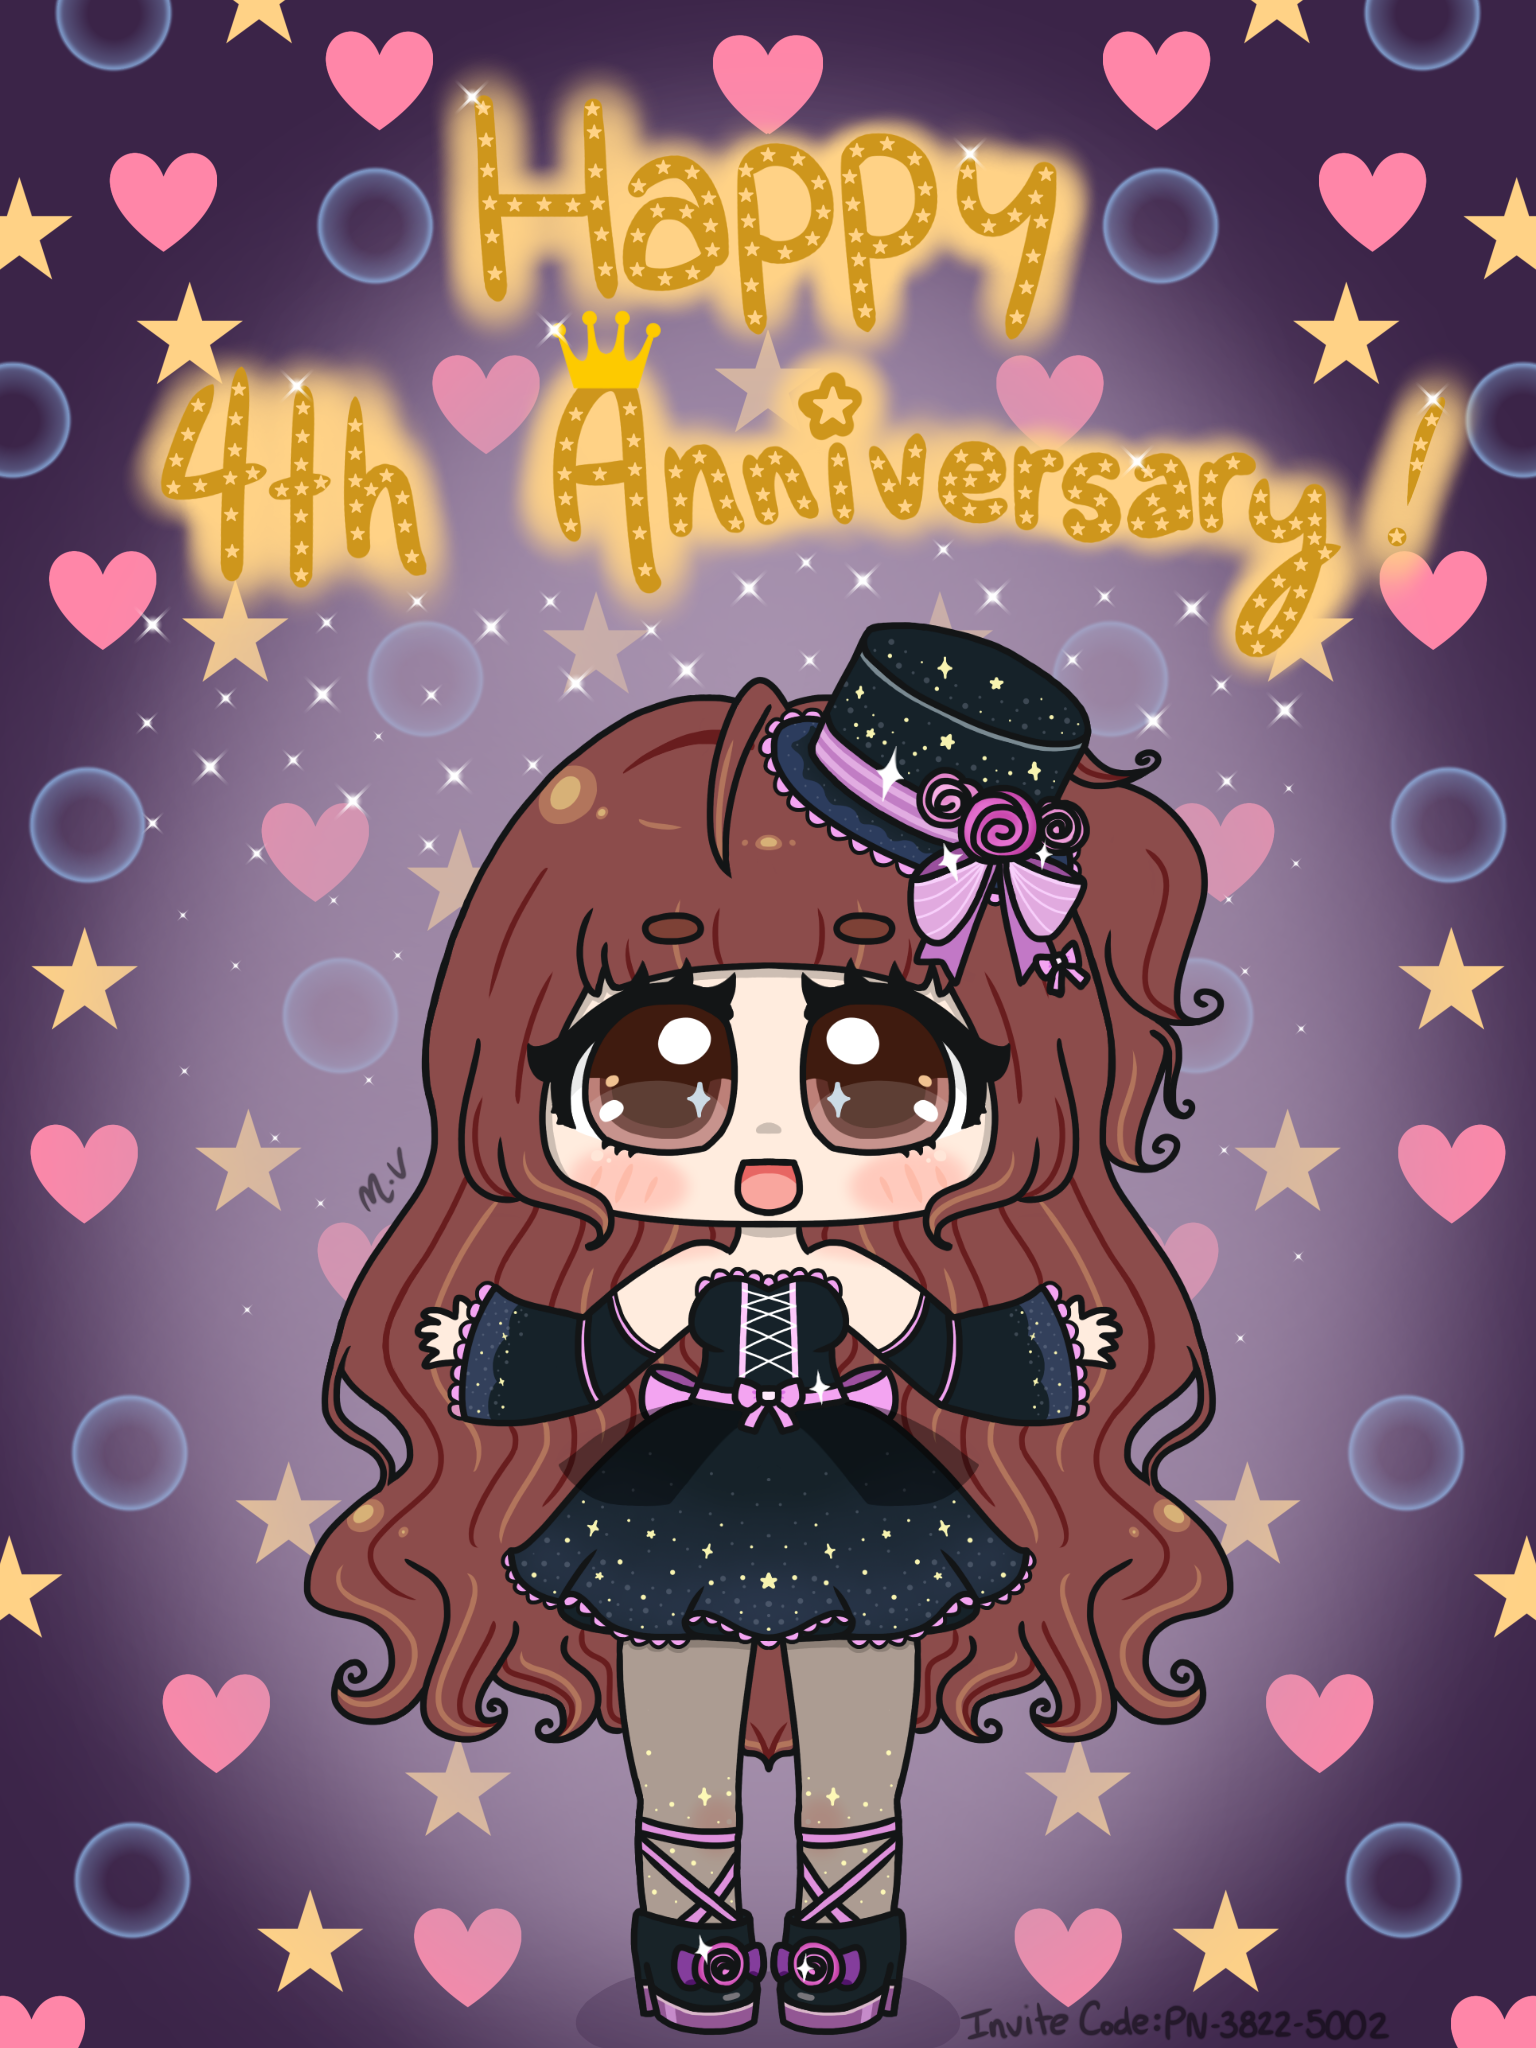 Line play 4th anniversary illustration contest by mewny on line play 4th anniversary illustration contest by mewny stopboris Gallery